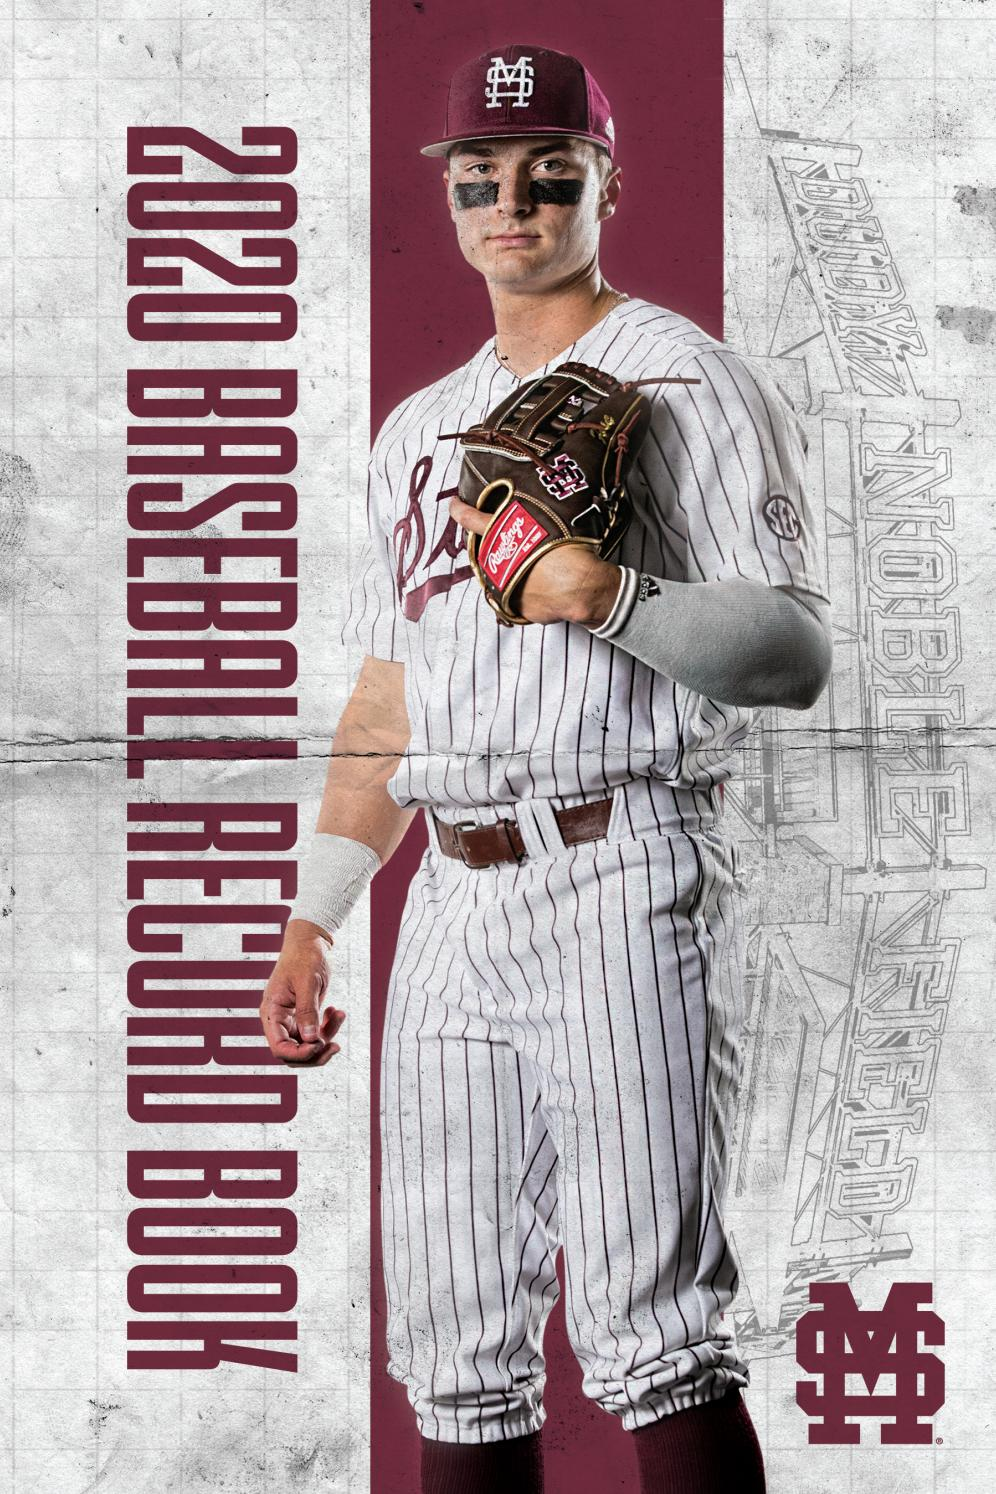 2020 mississippi state bulldogs baseball record book by mississippi state university athletics issuu 2020 mississippi state bulldogs